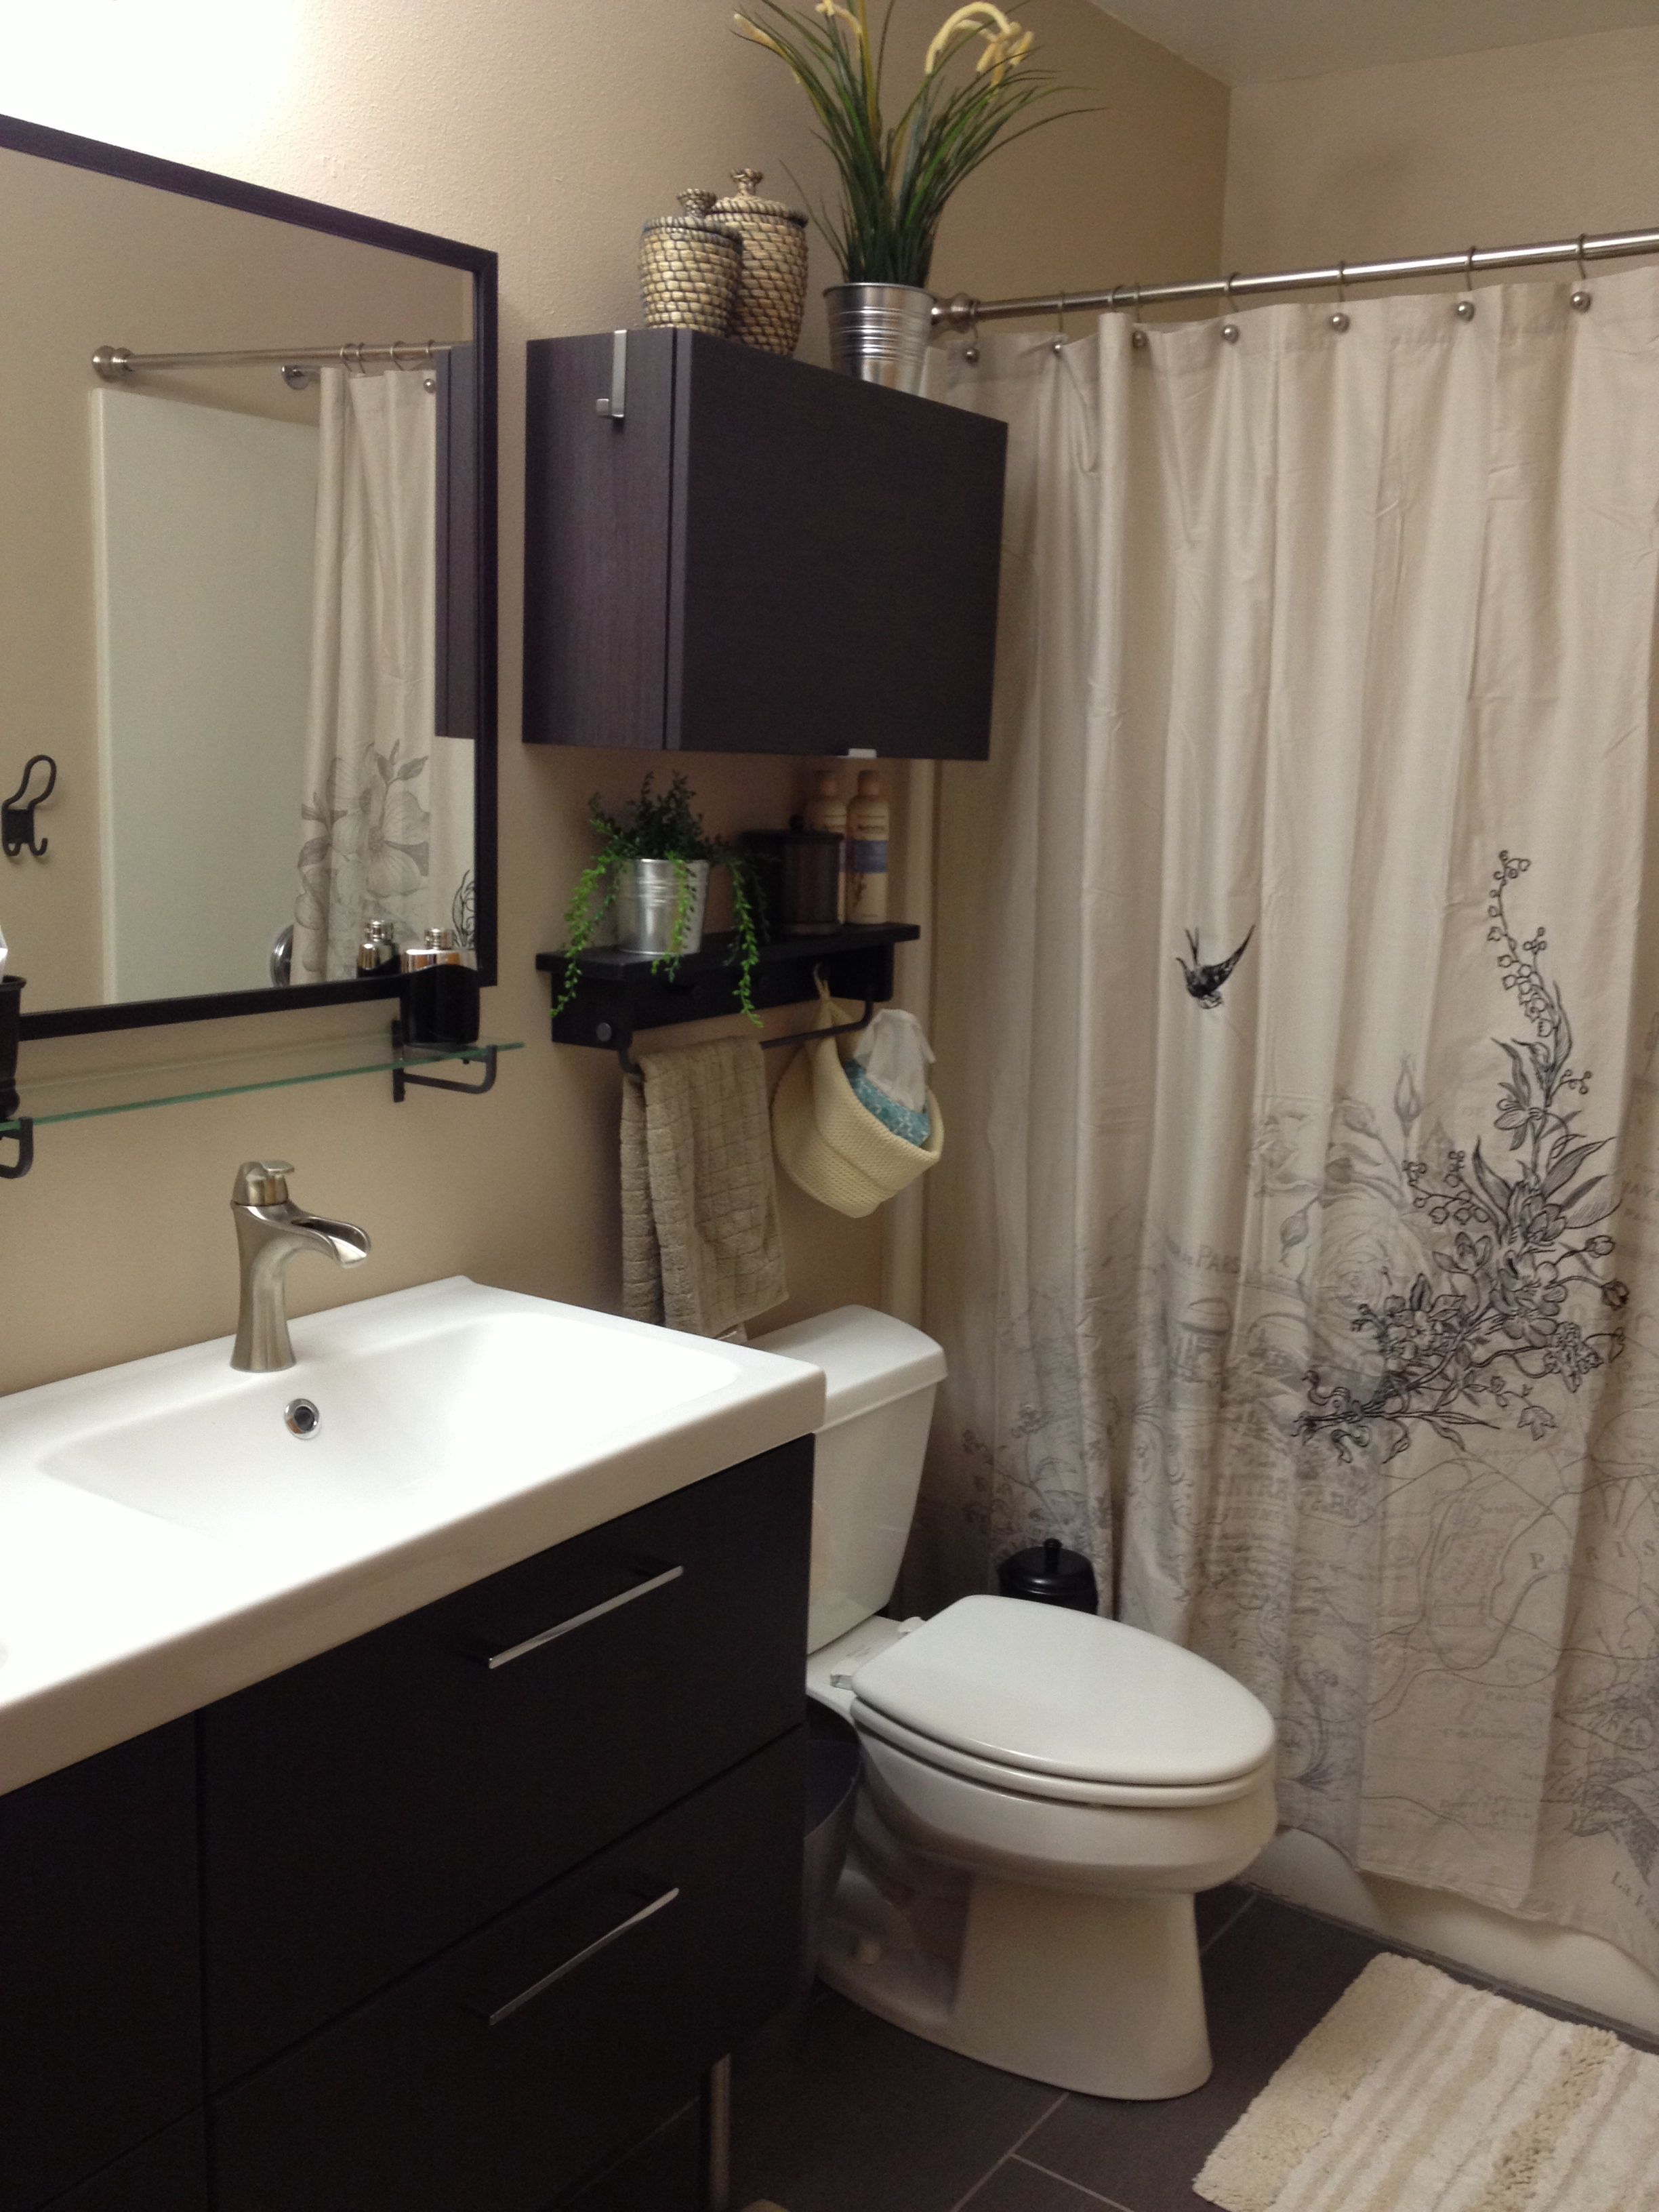 Pin By Andreanne Pena On Ikea Bathroom Renovation 1 Bathroom Renovation Ikea Bathroom Bathroom Design